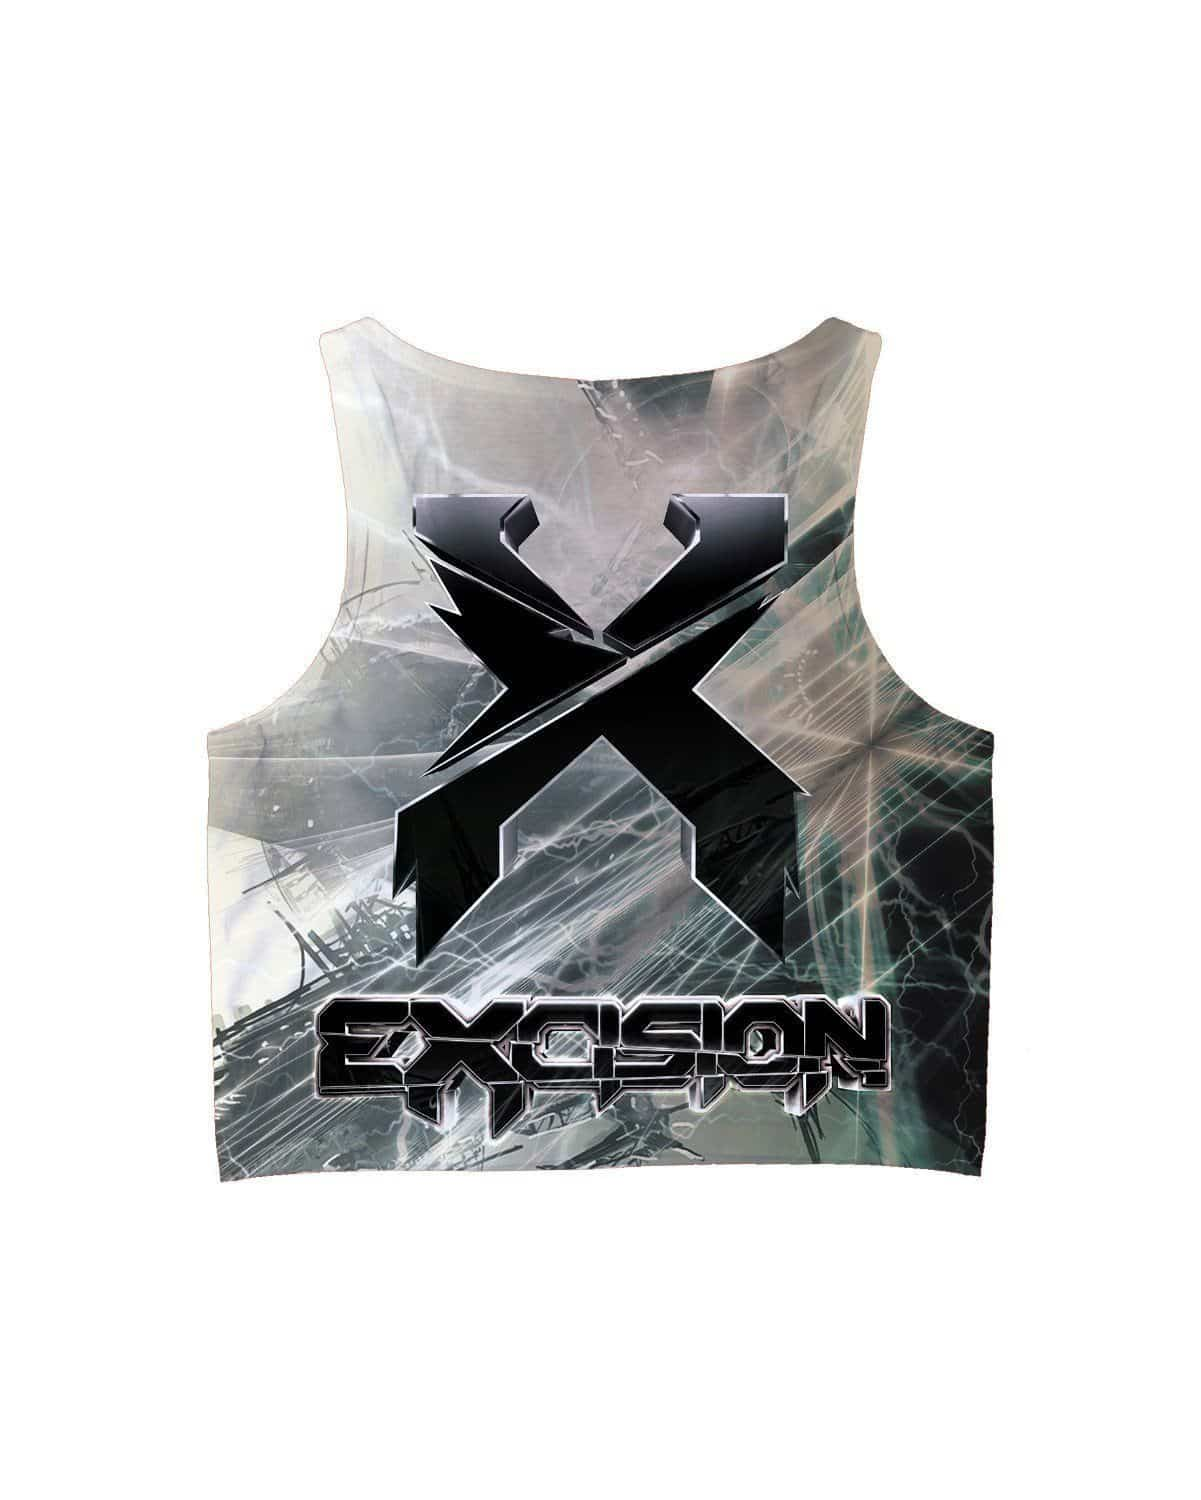 Excision Shambhala Mix 2016 Crop Top - Compilation Version